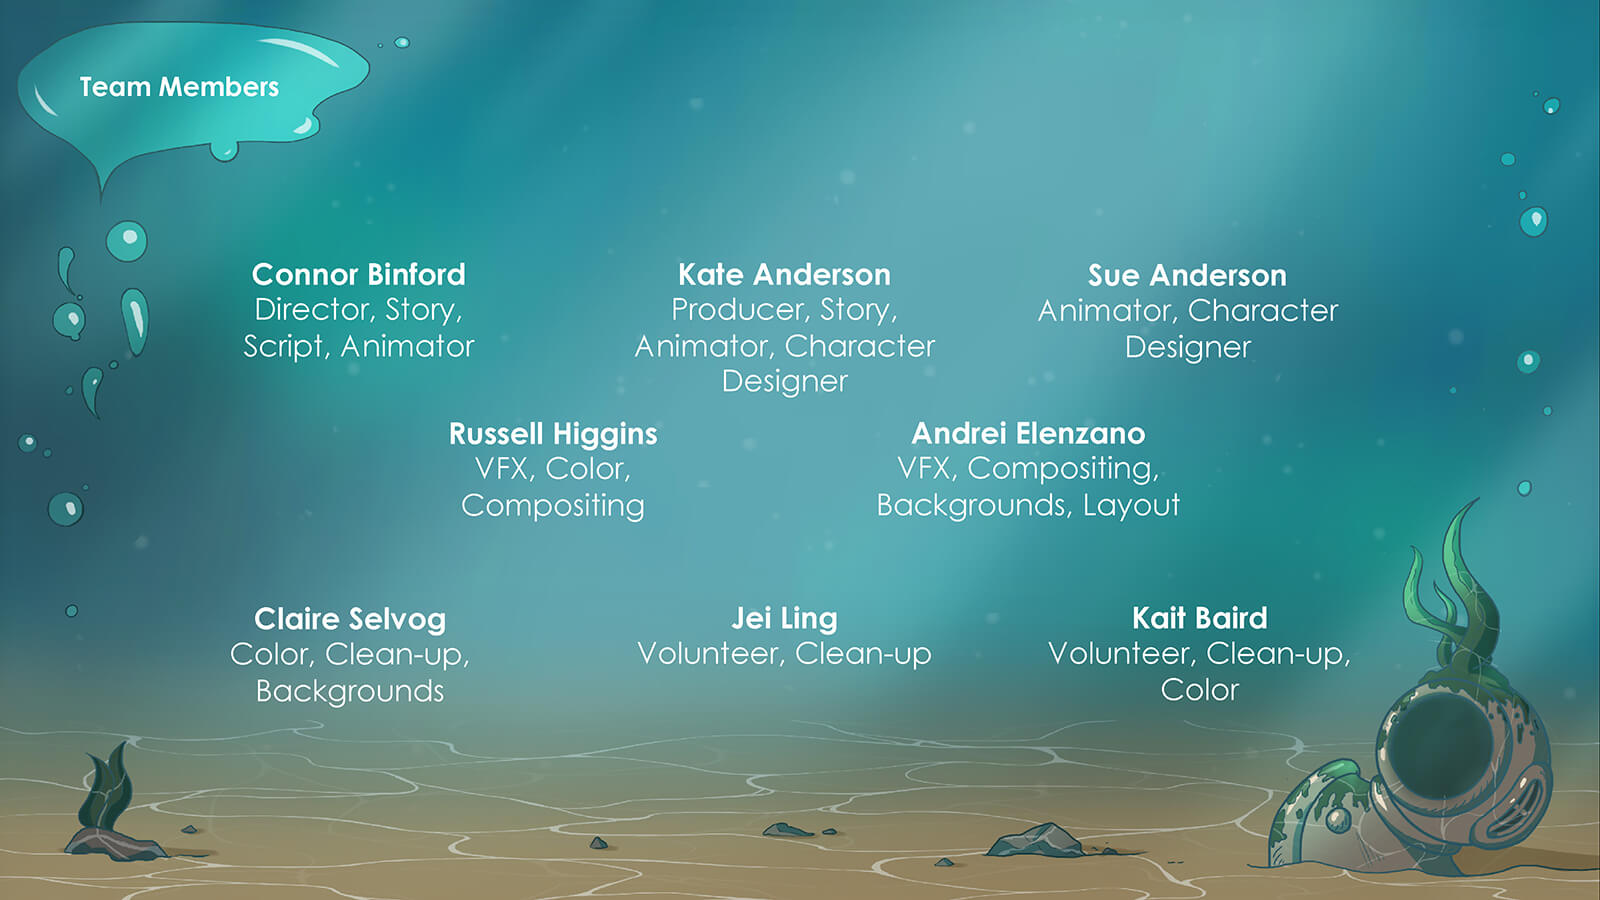 Production credits for the film Fathom